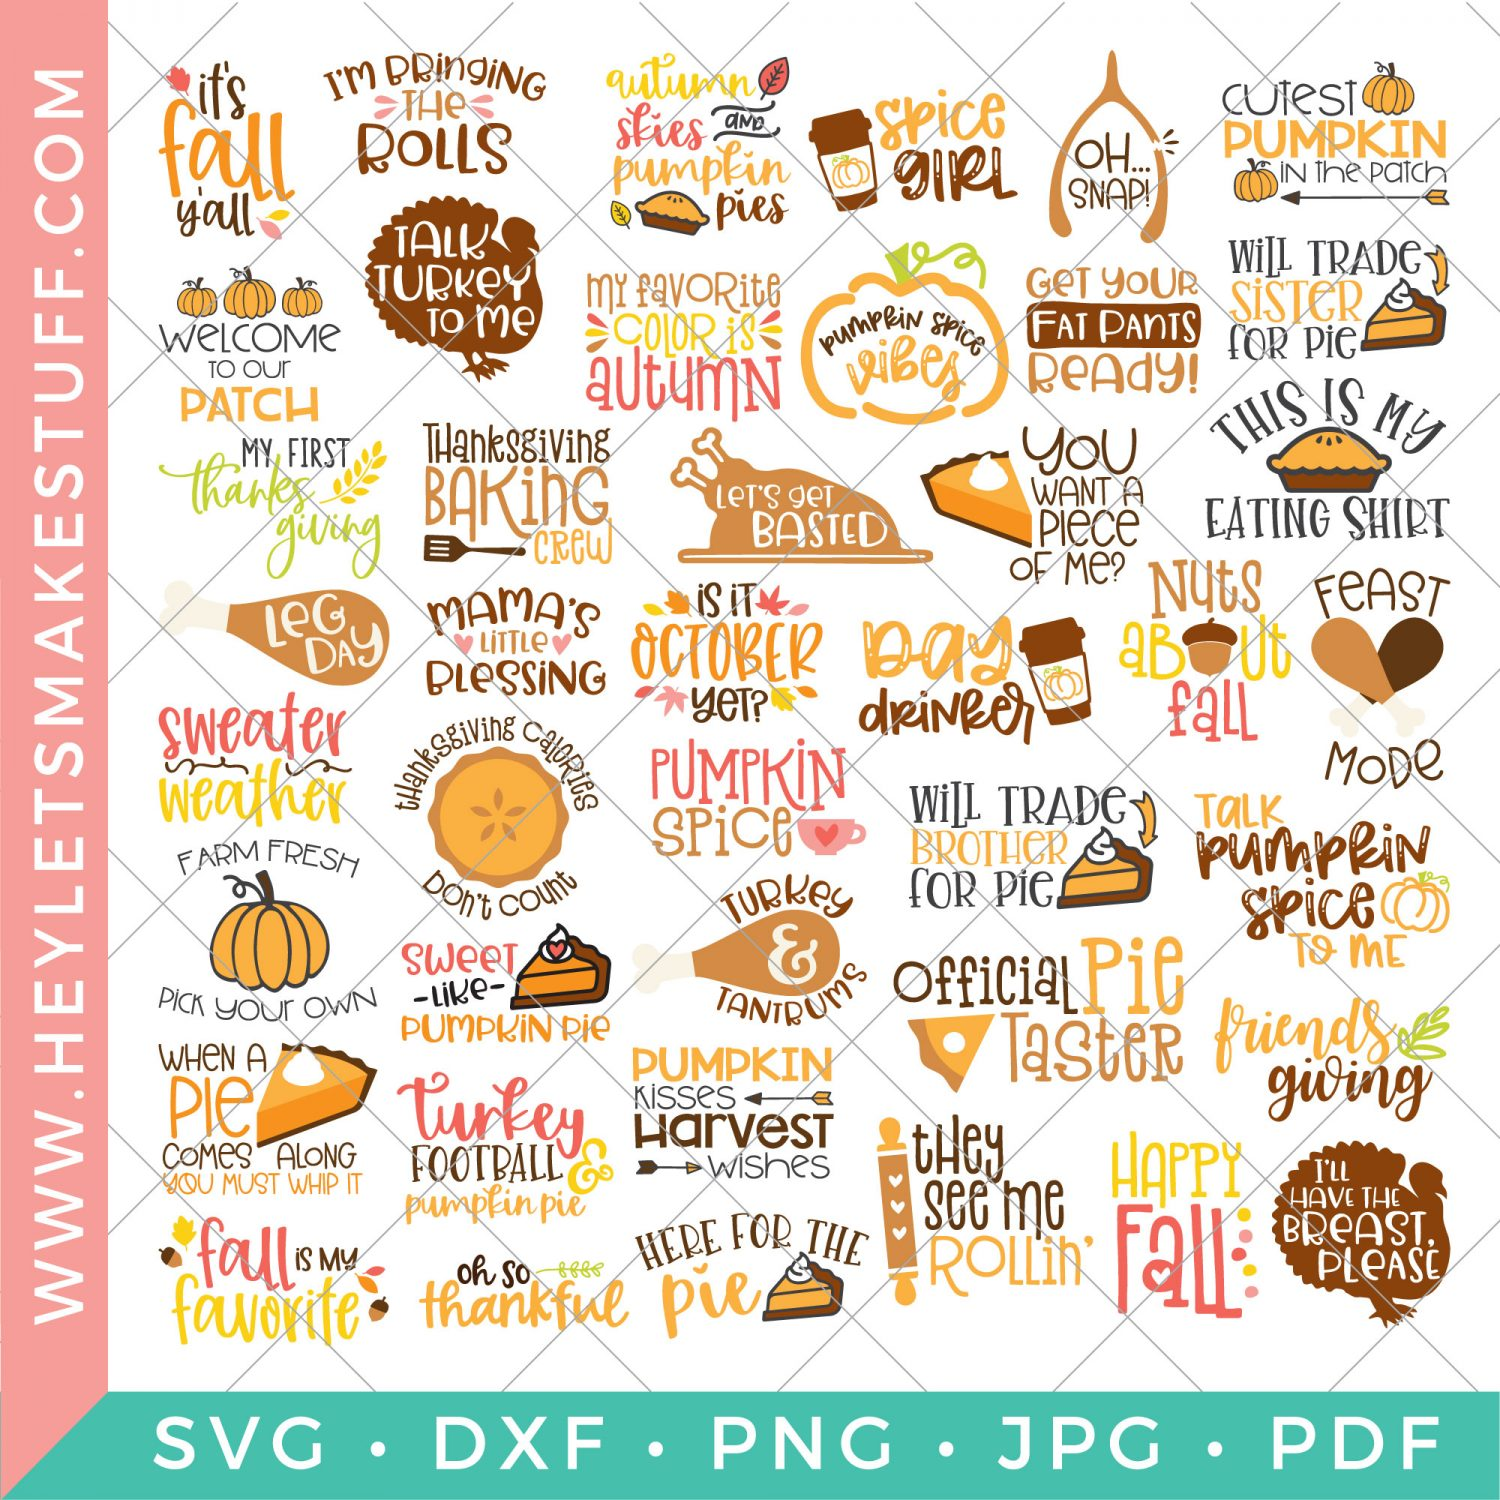 All the files in the big fall and thanksgiving SVG bundle